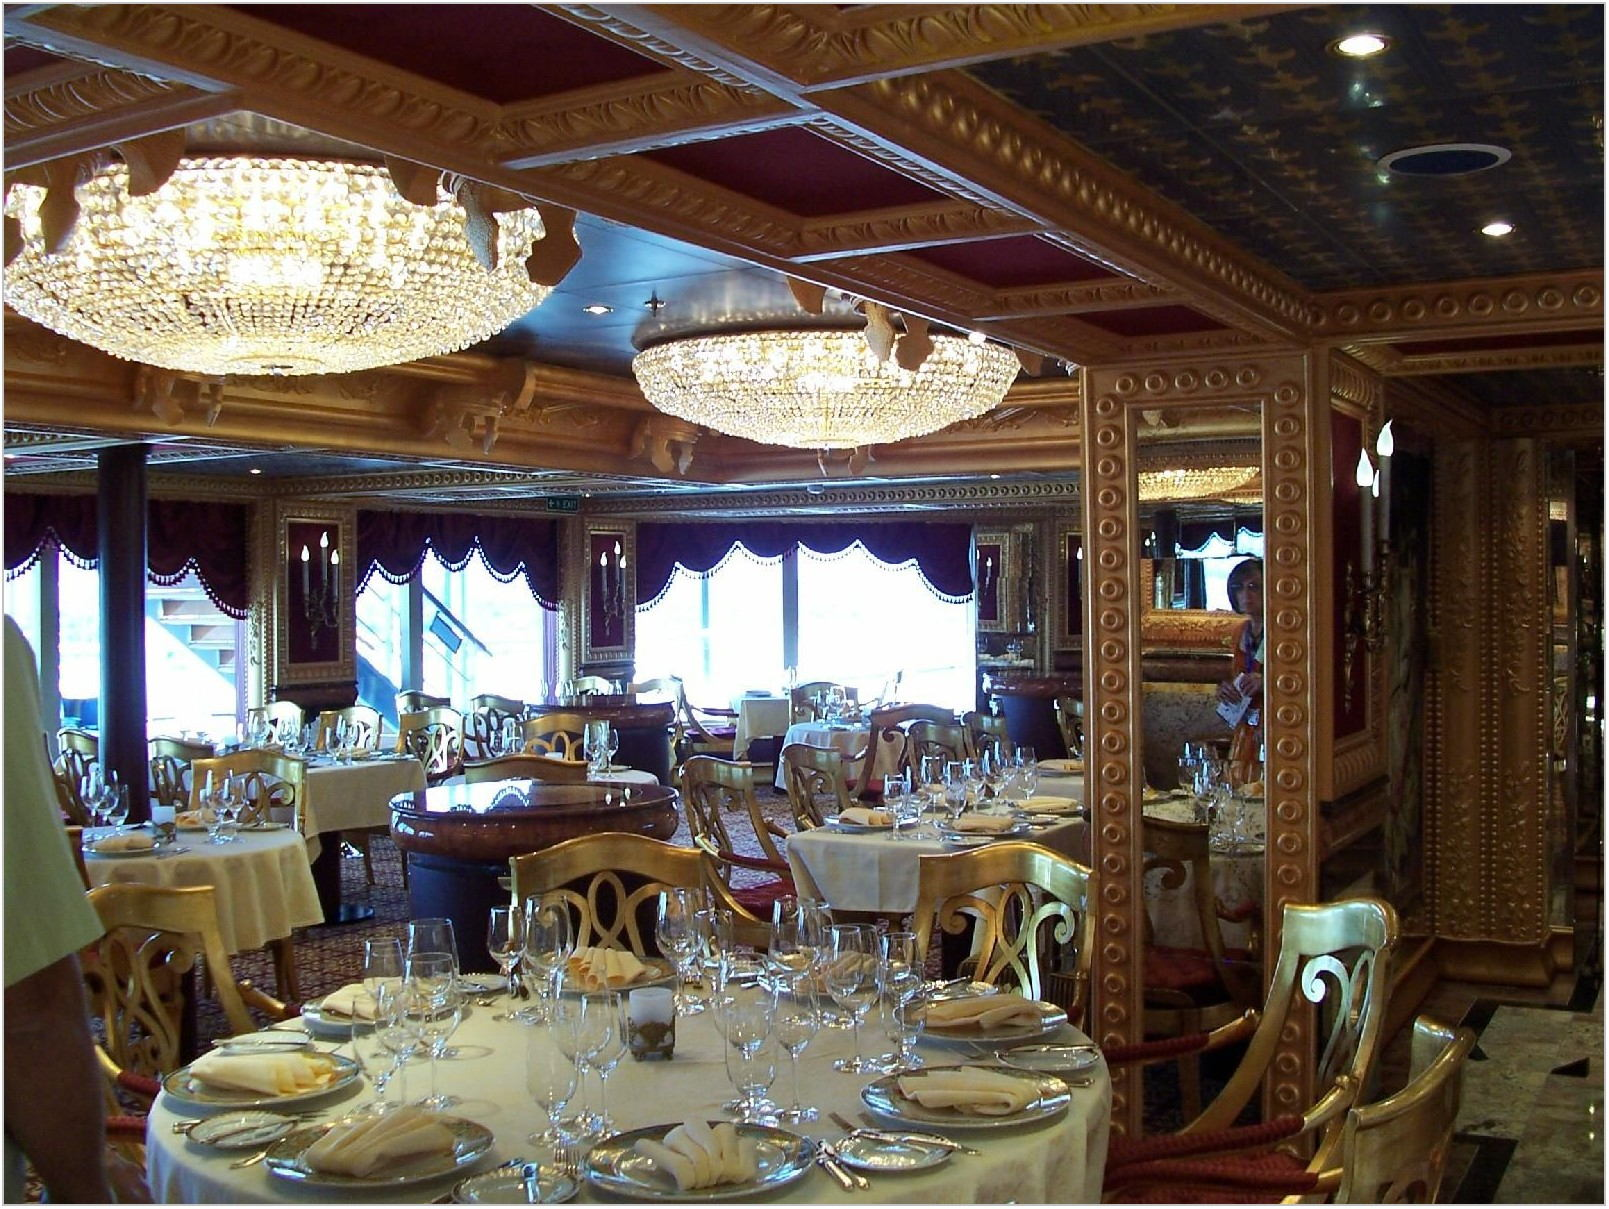 Carnival Freedom Dining Room